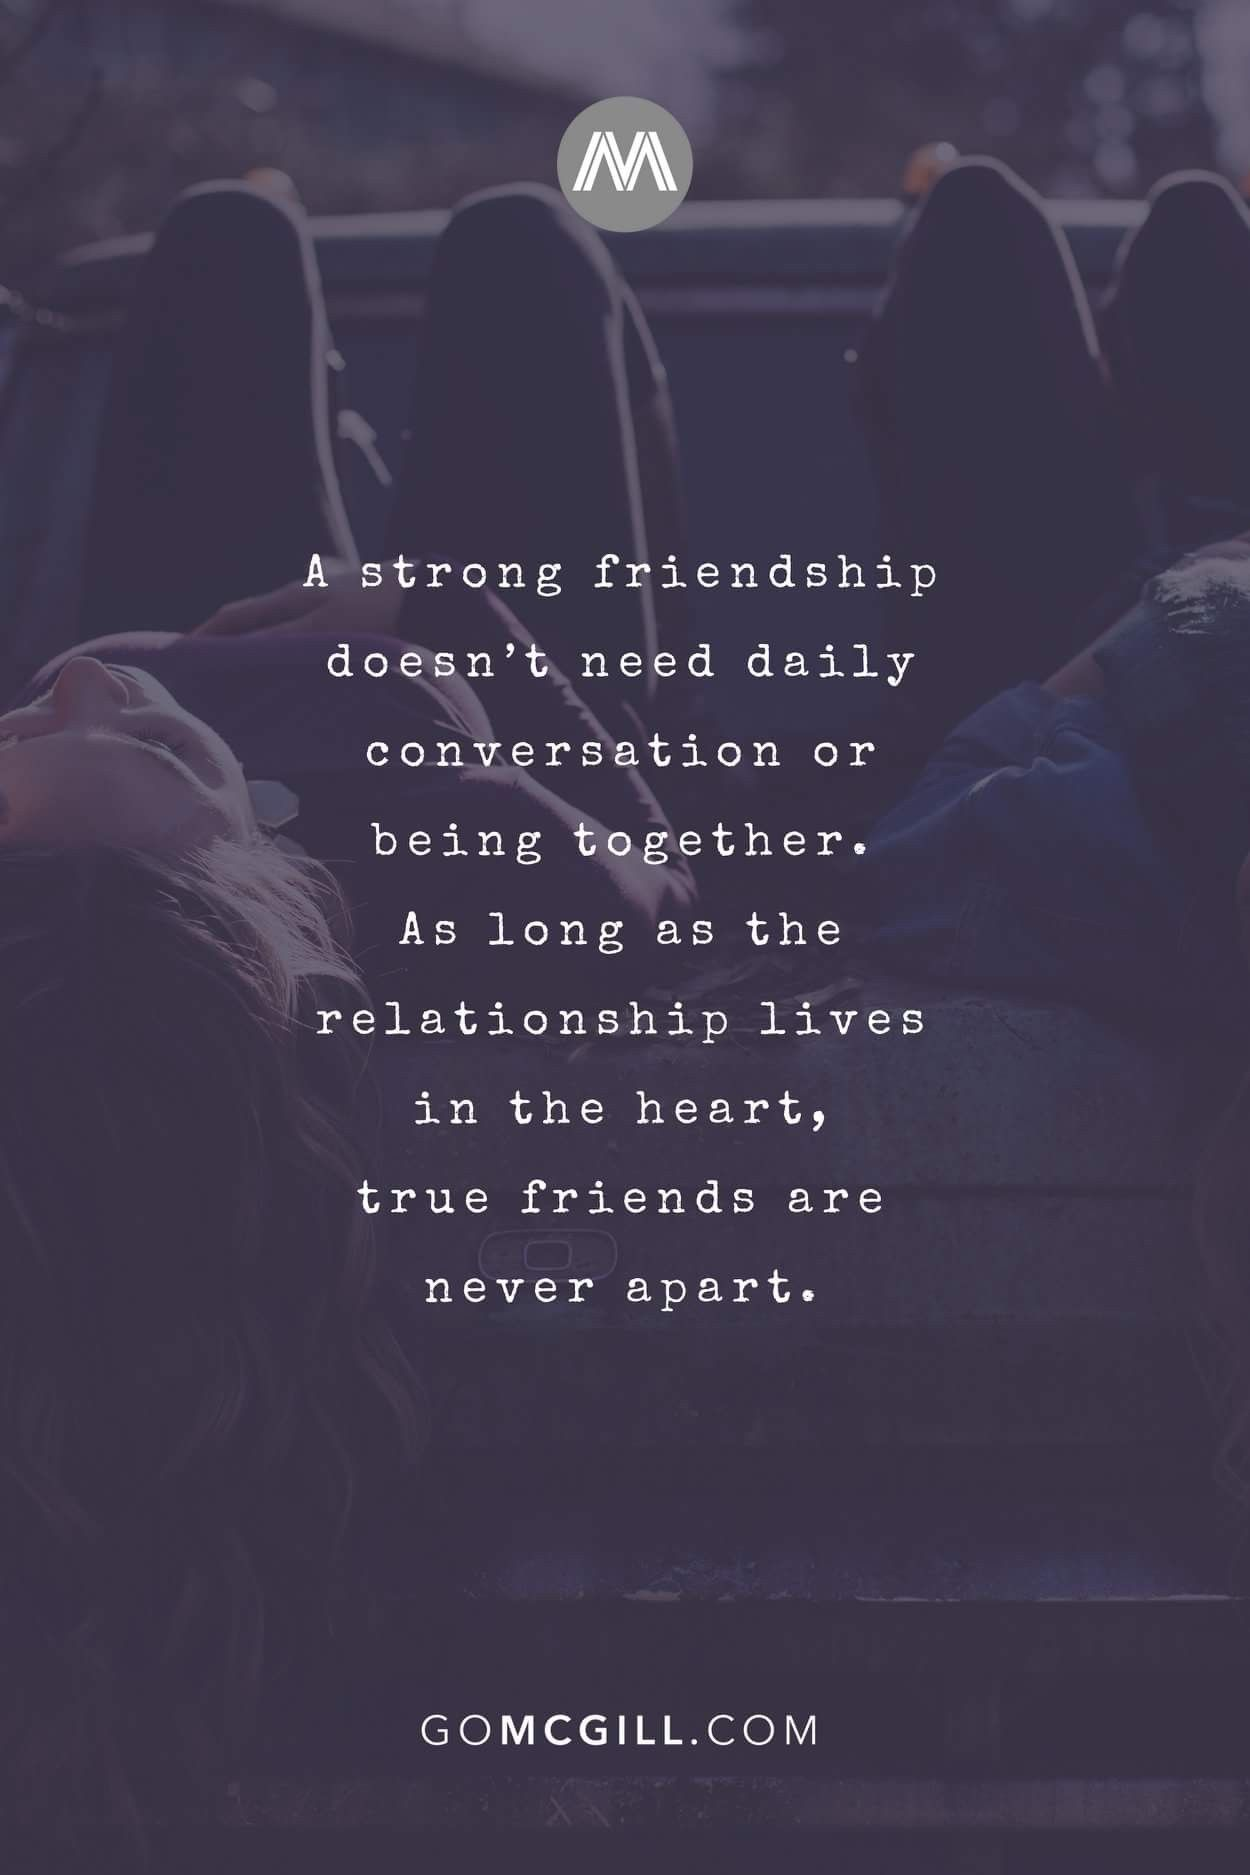 Pin By Glen Evans On Quotes Friends True Friends Friends Quotes Togetherness